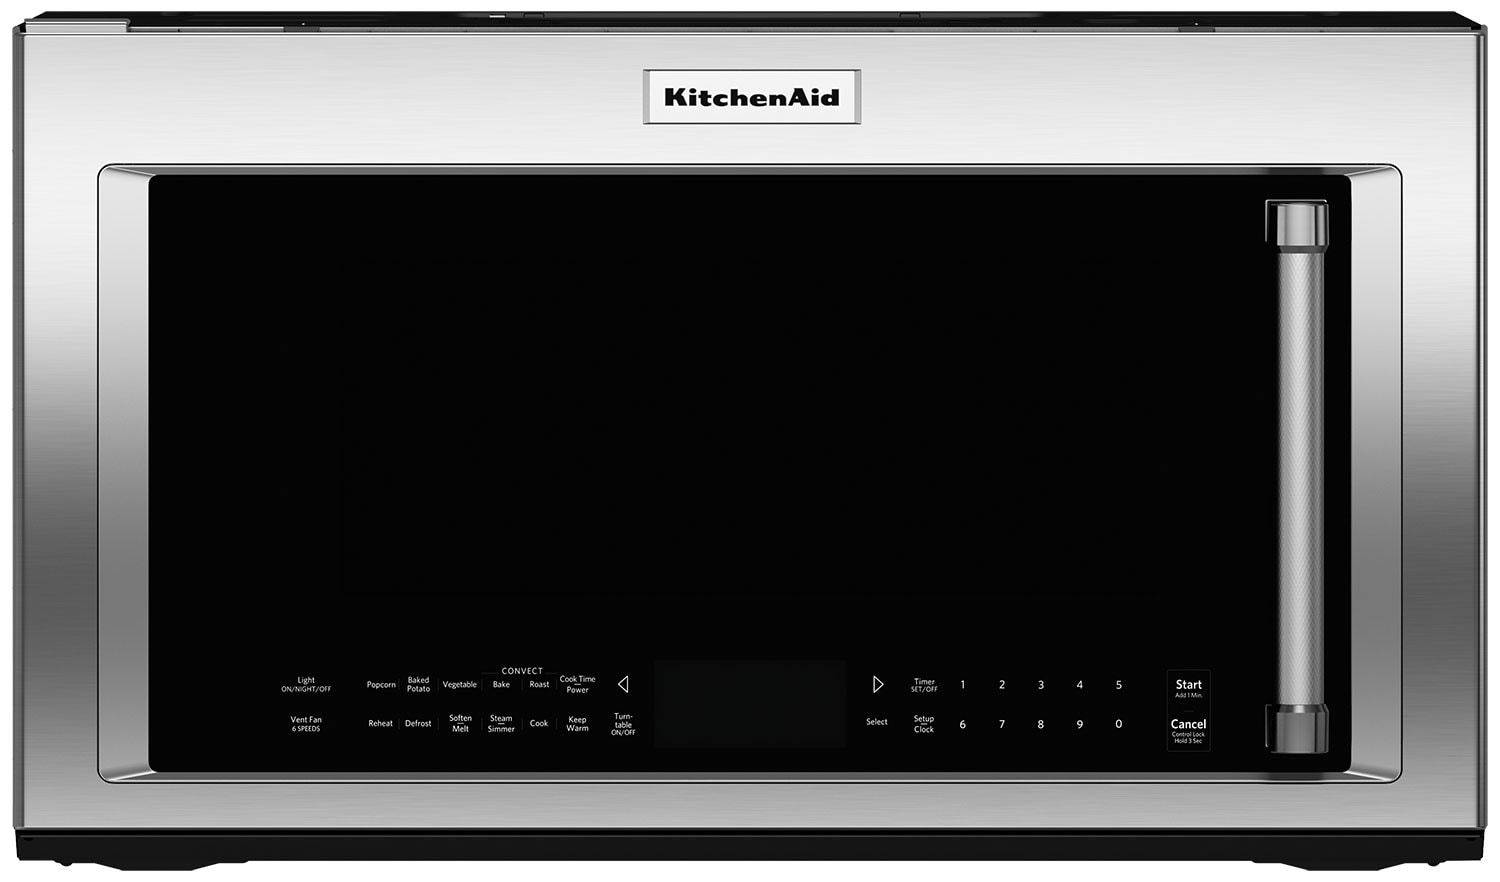 Cooking Products - KitchenAid 1.9 Cu. Ft. Convection Microwave - Stainless Steel